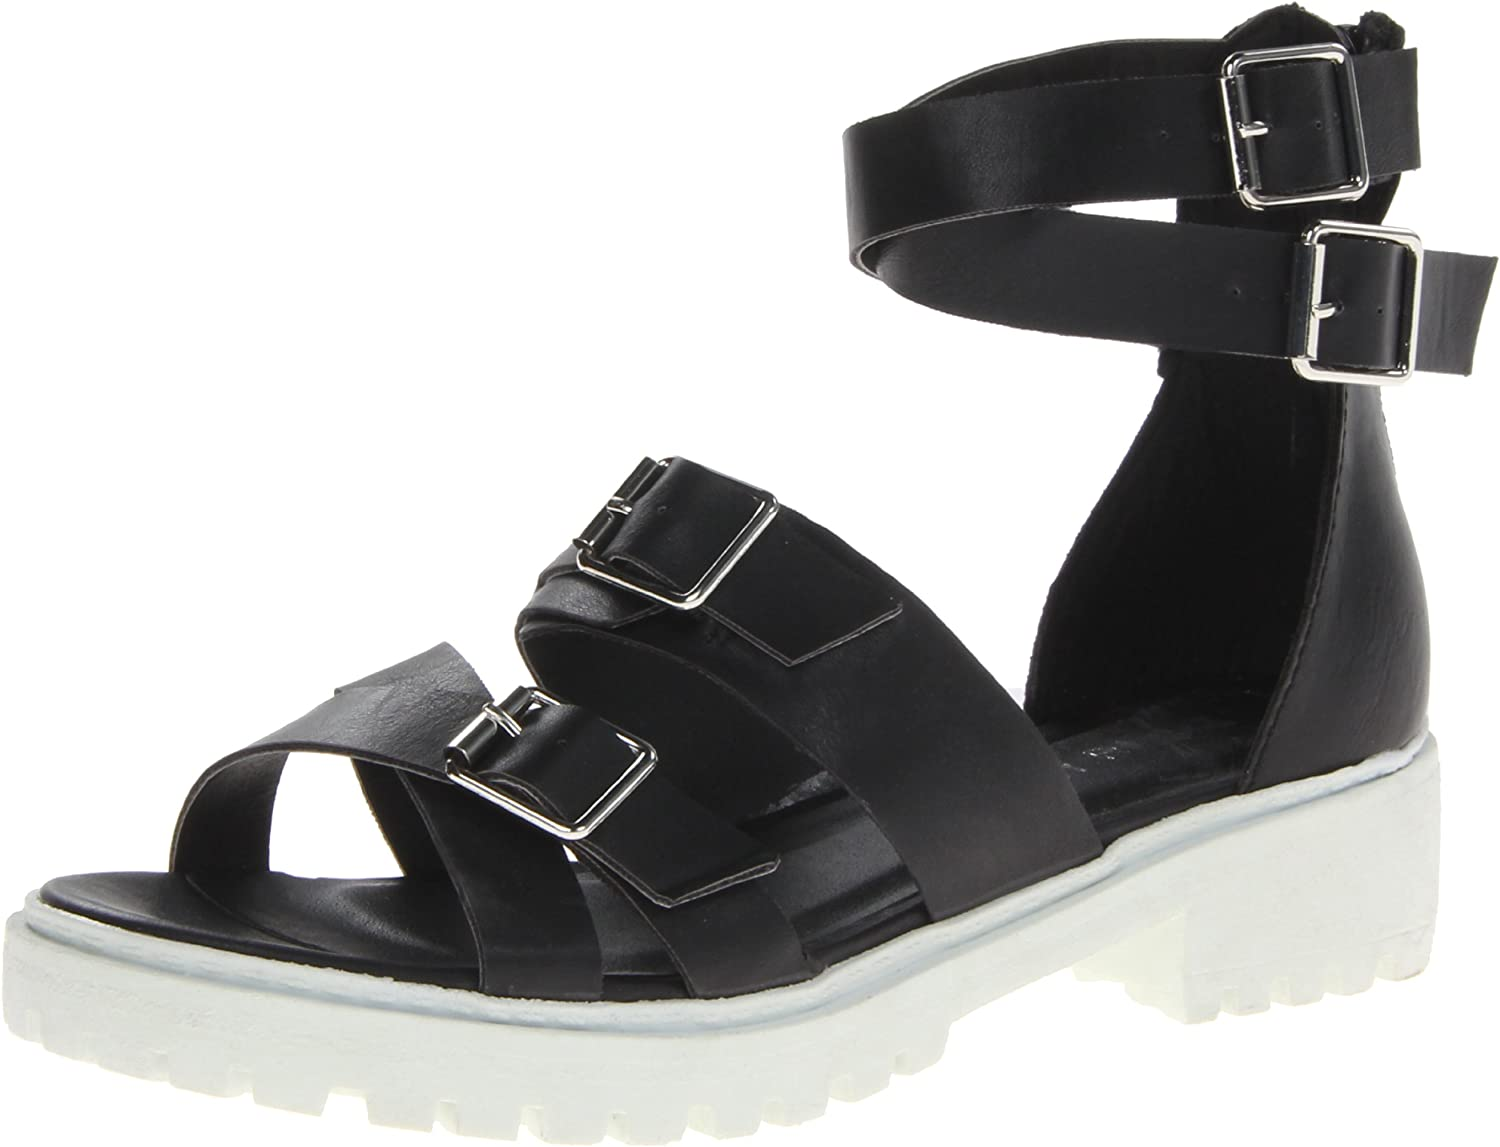 Dirty Laundry by Chinese Laundry Women's Lilybelle Gladiator Sandal